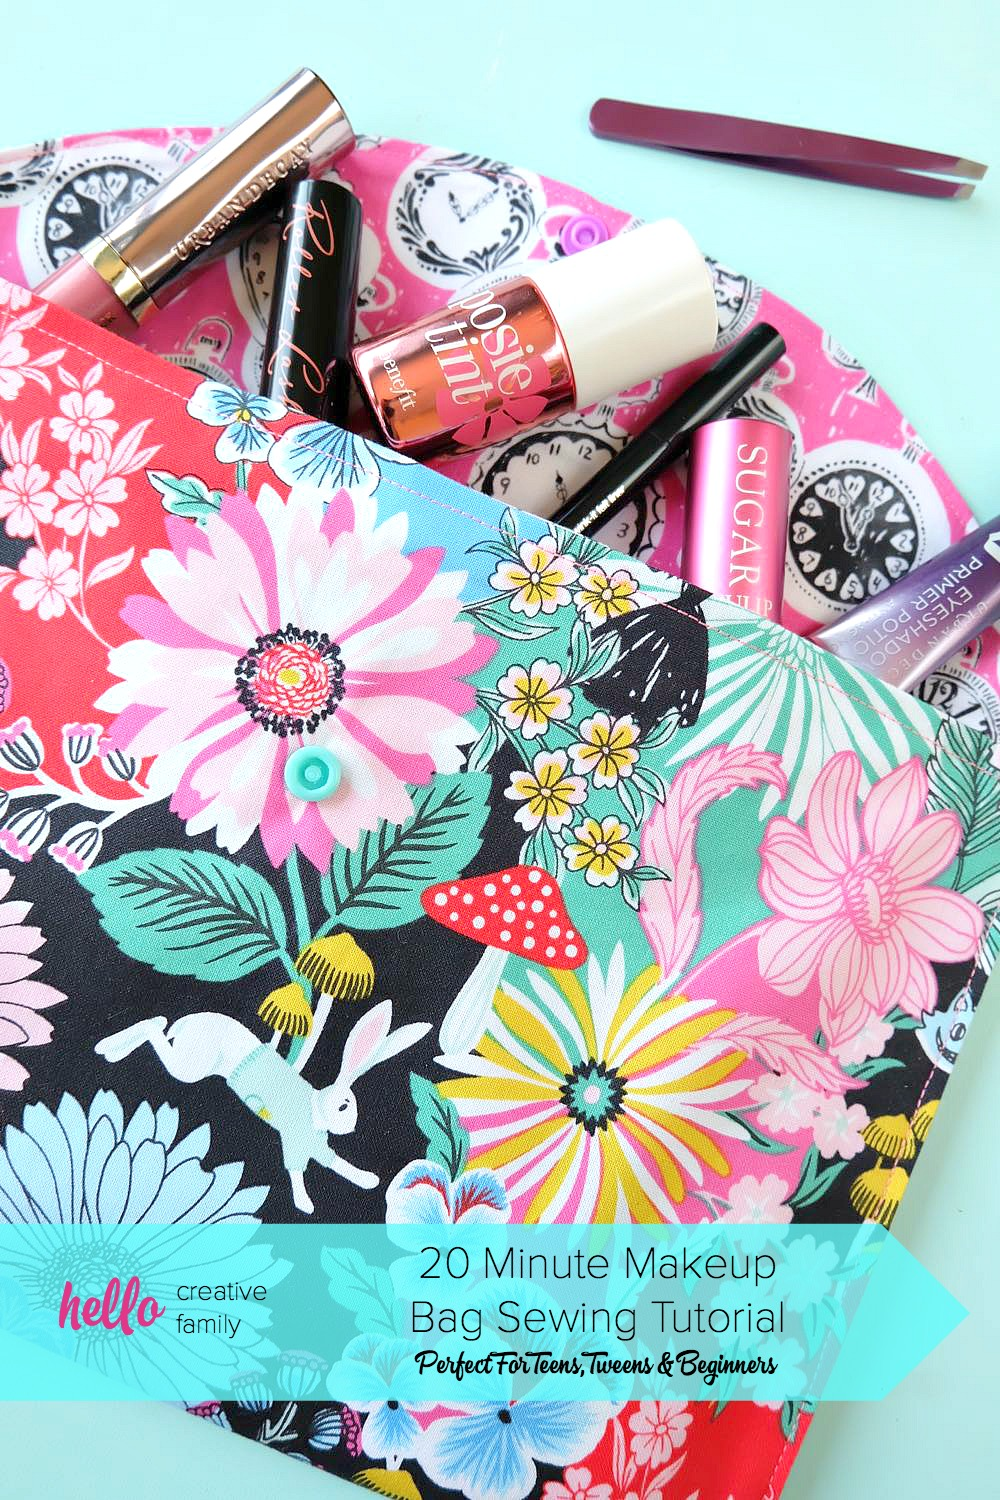 50 Easy Handmade Gift Ideas You'll Love: 20 Minute Makeup Bag Sewing Tutorial